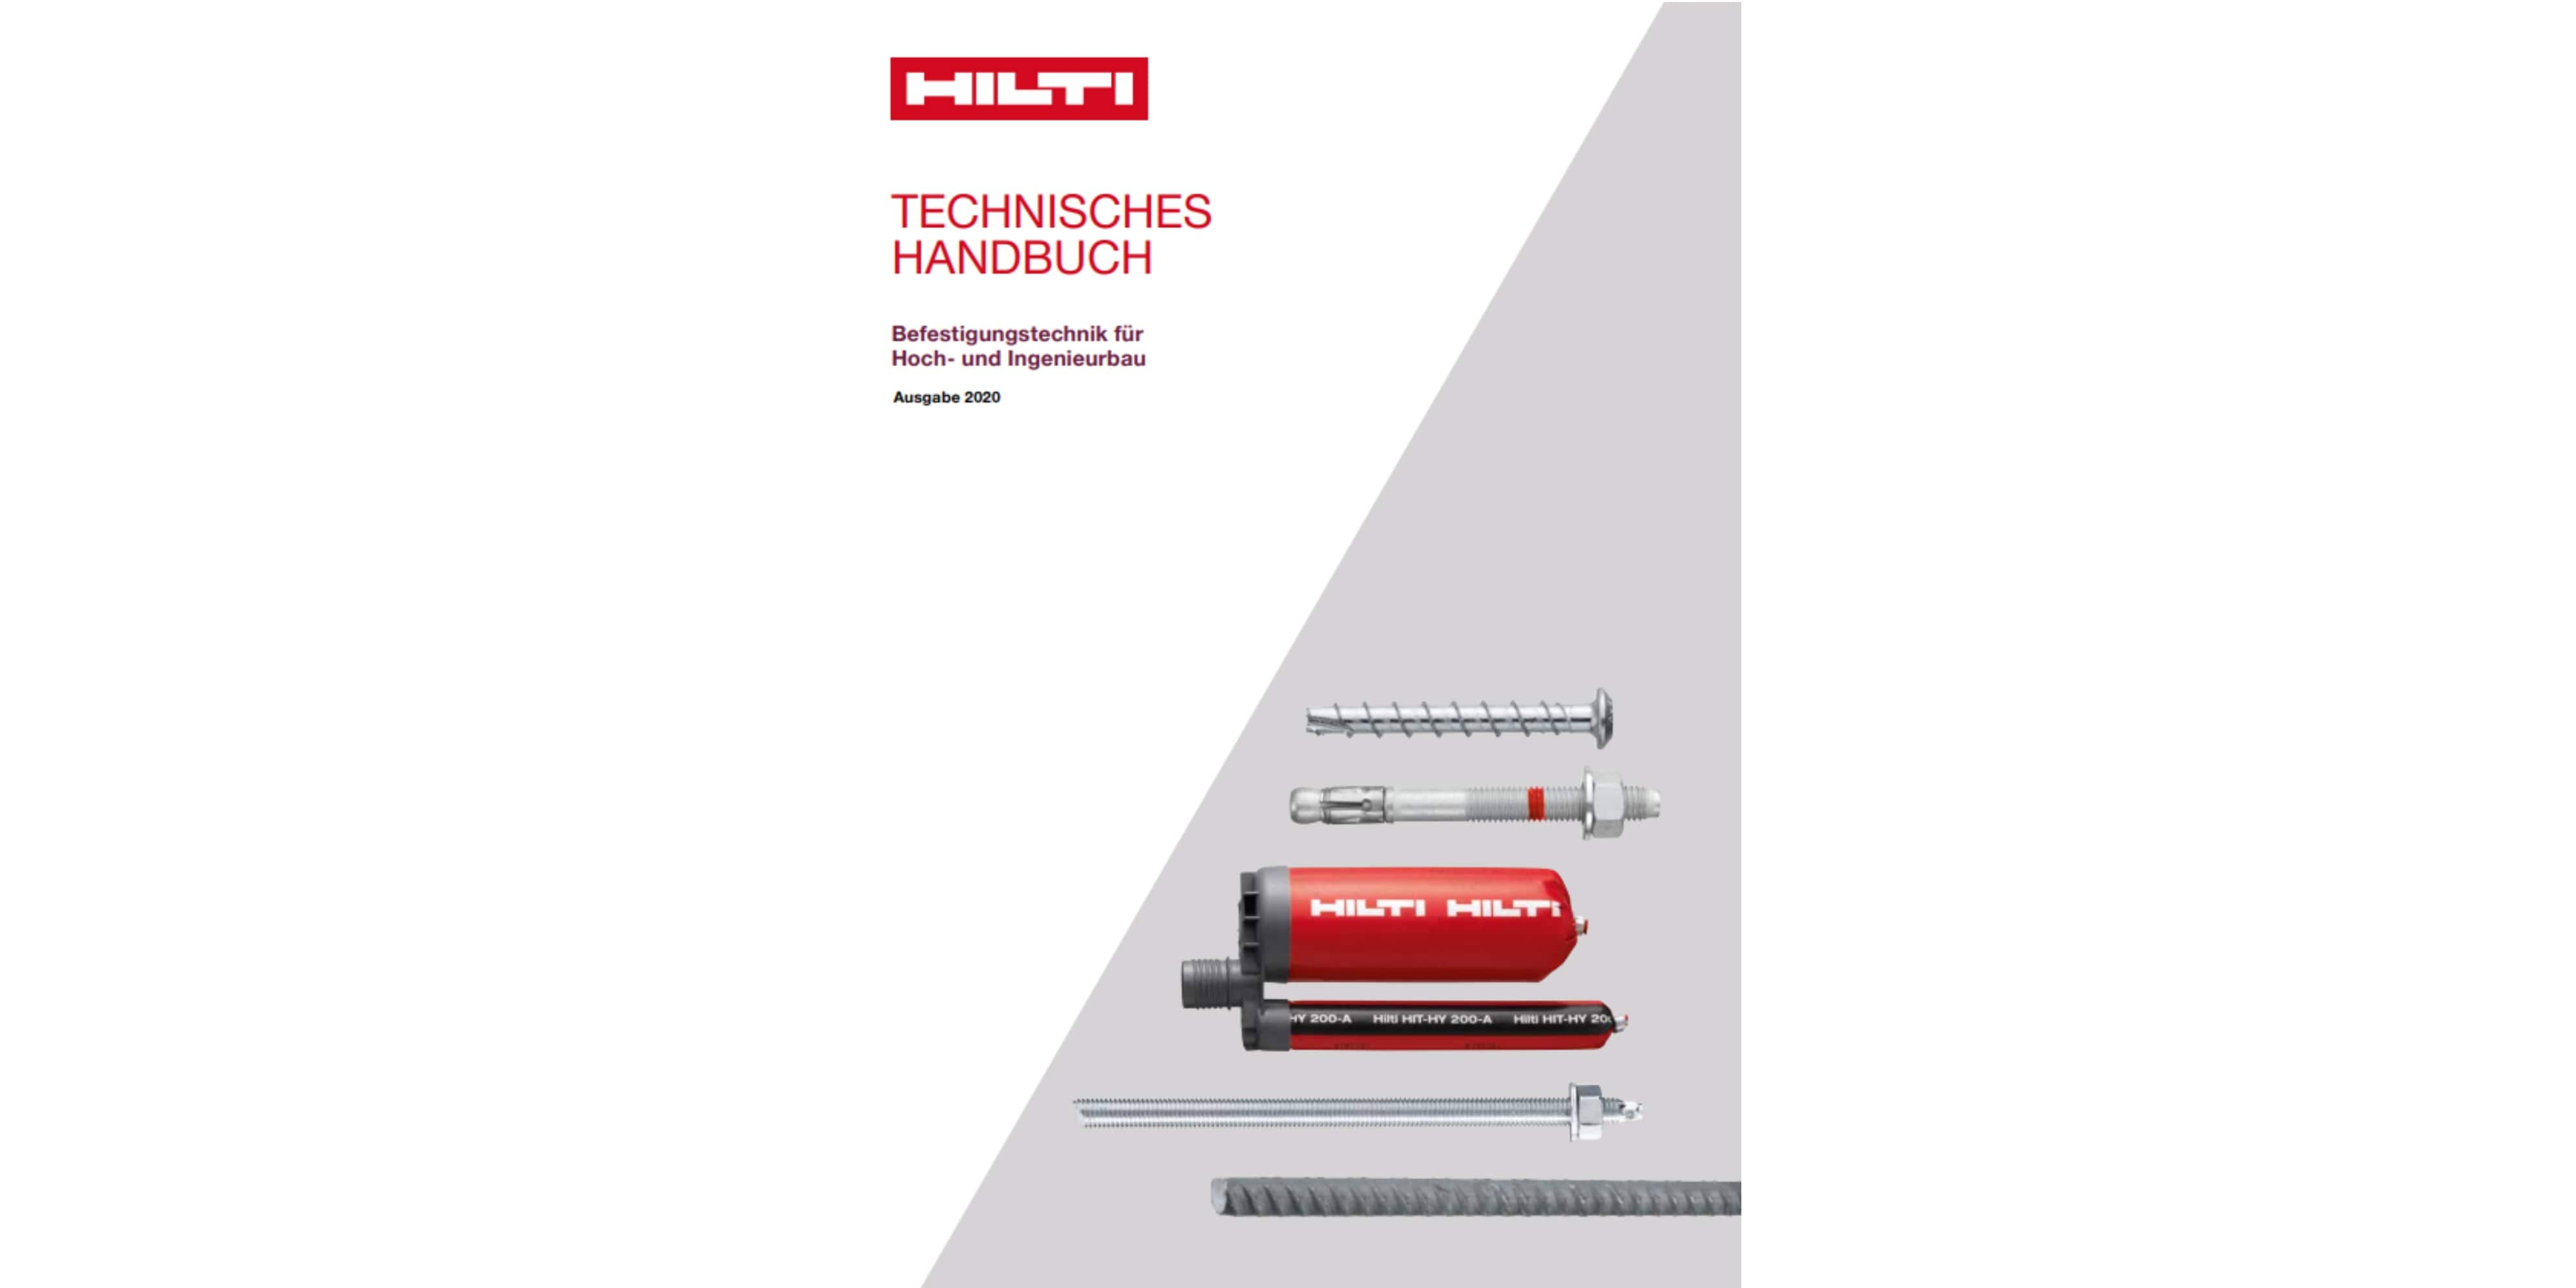 Hilti MIQ System technical data